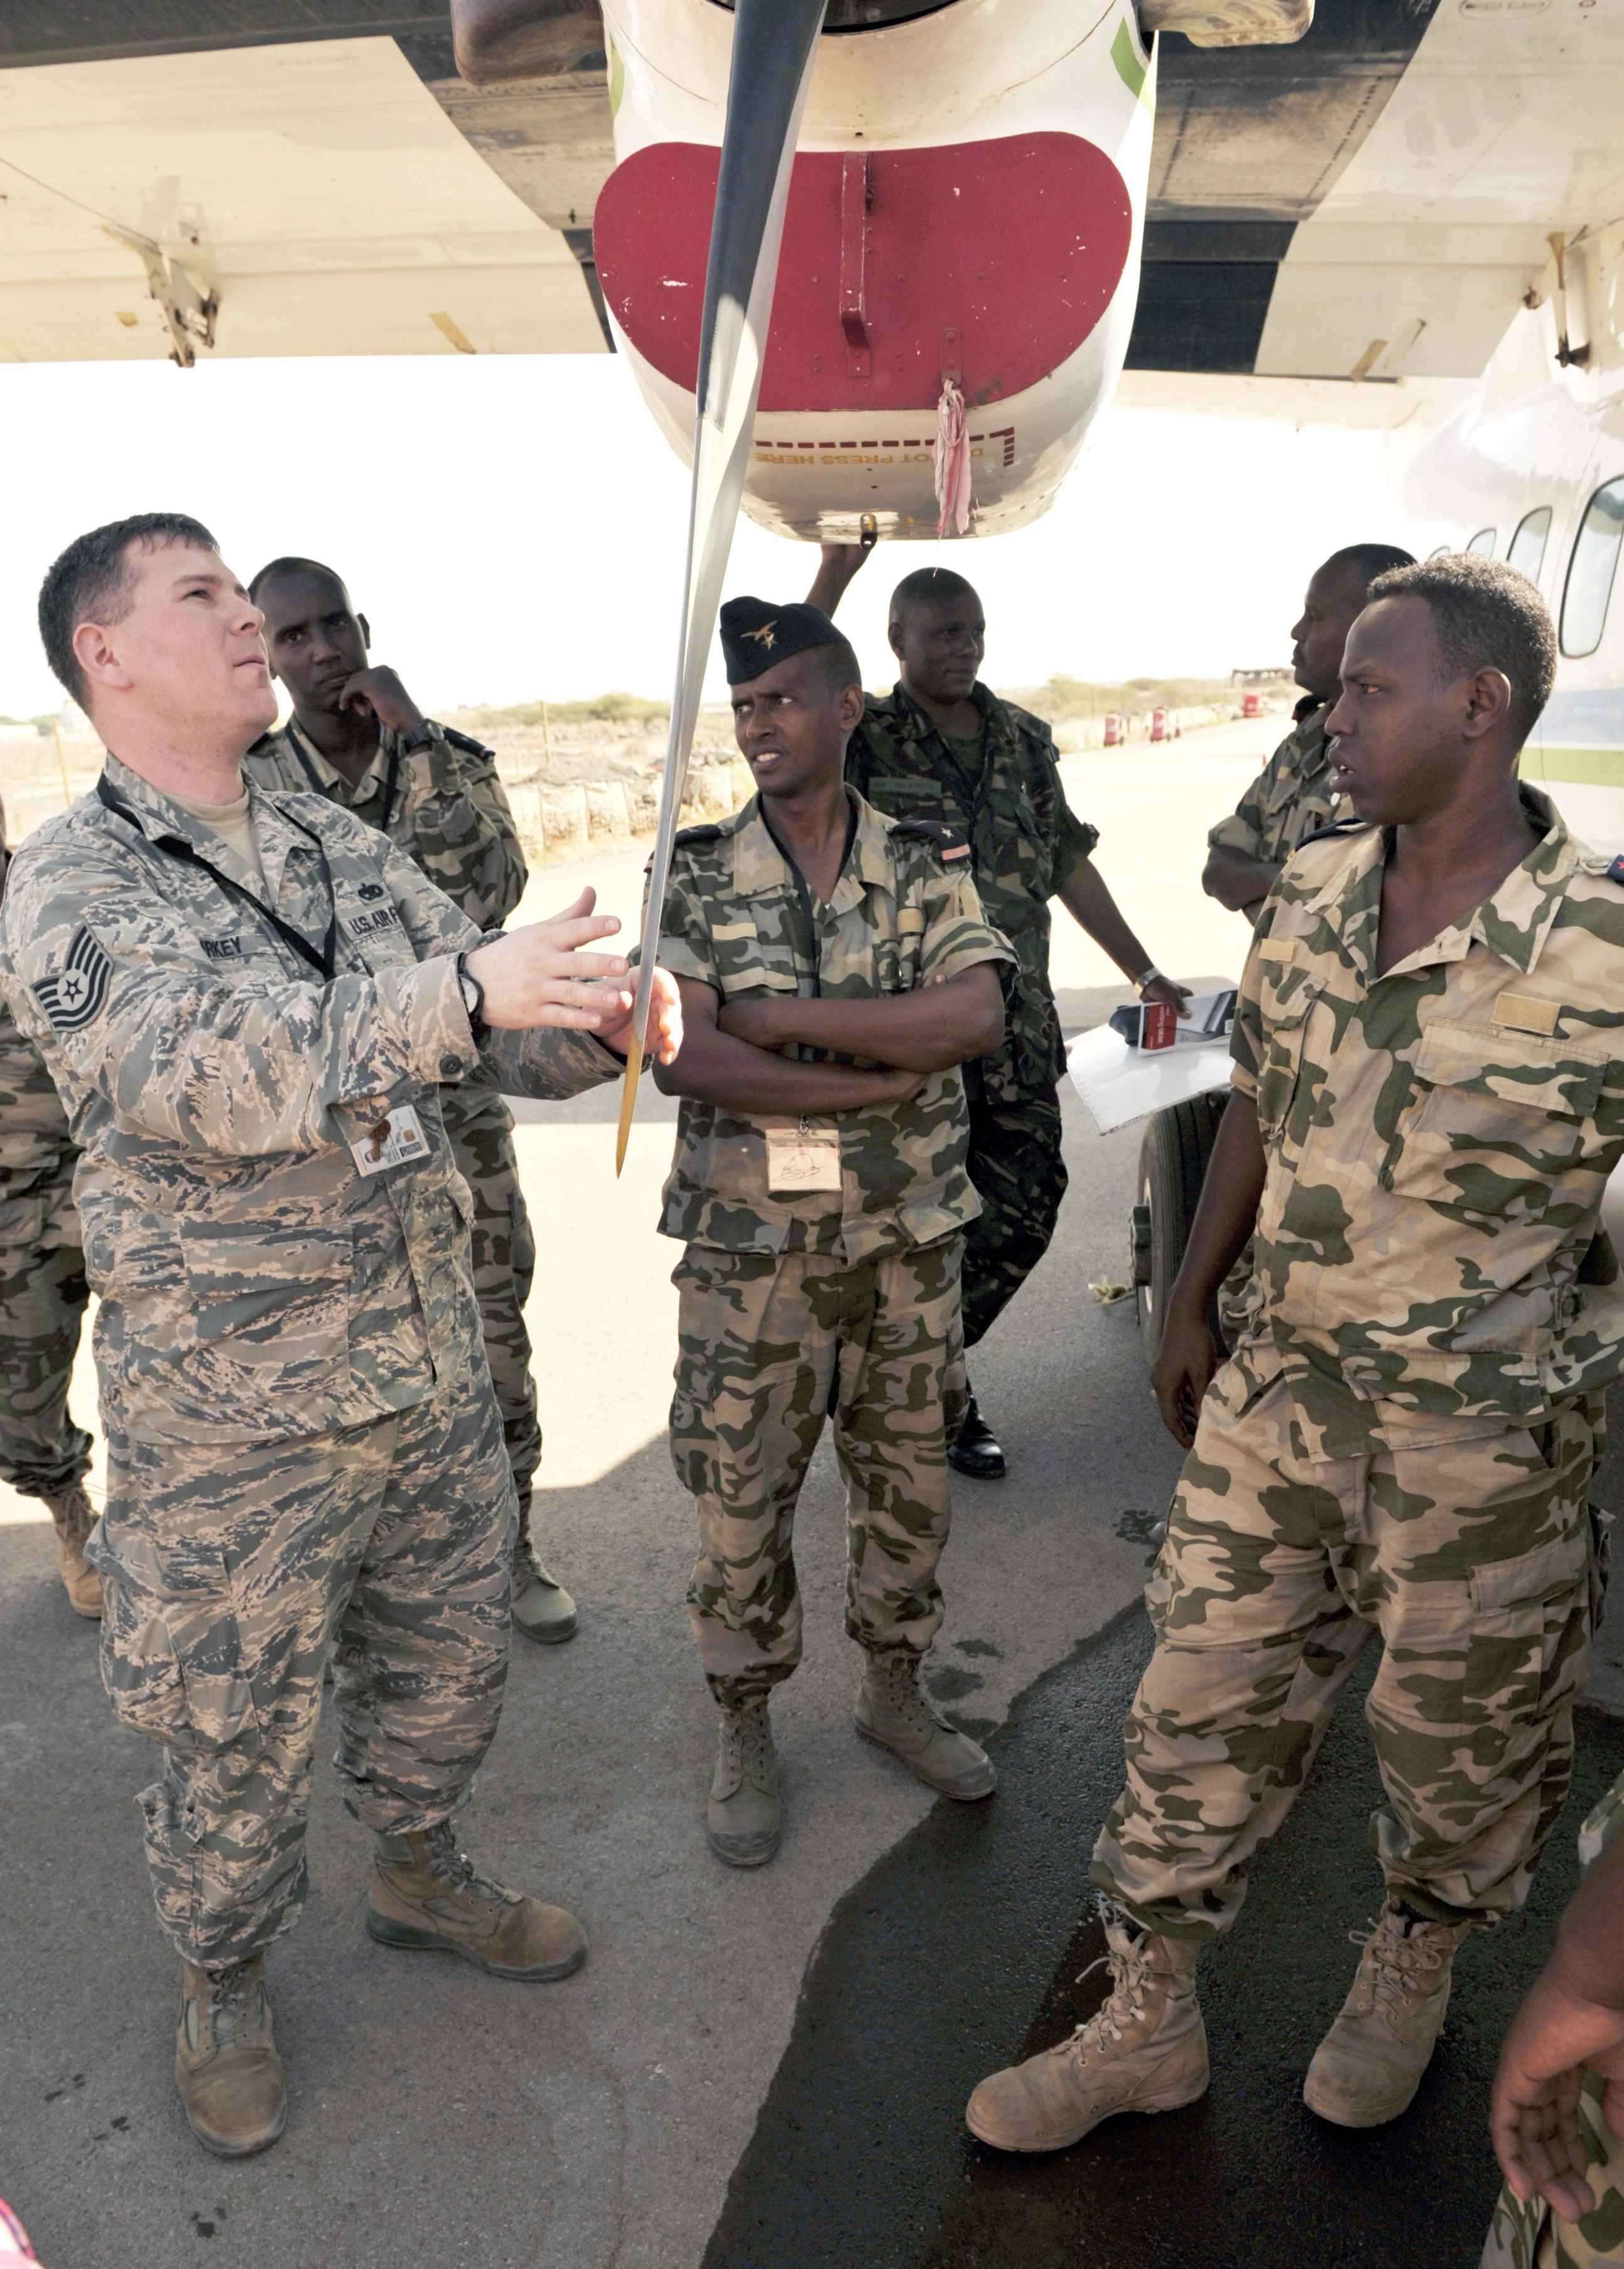 U.S. Air Force Tech. Sgt. Albert Kirkey, 818th Mobility Support Advisory Squadron aircraft maintenance advisor, talks with Djiboutian air force members about maintenance procedures for the Let L-410 Turbolet aircraft during African Partnership Flight–Djibouti at Djibouti Air Base, Feb. 9, 2015.  APF is the premiere program to bring together partner nations to increase cooperation and interoperability, which fosters stability and security throughout the continent. (U.S. Air Force Photo by Tech. Sgt. Ian Dean)